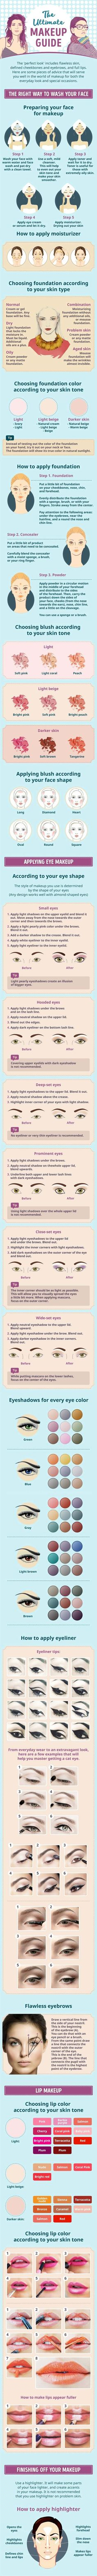 Best Makeup Tutorials for Teens -The Ultimate Makeup Guide You Can't Live Without - Easy Makeup Ideas for Beginners - Step by Step Tutorials for Foundation, Eye Shadow, Lipstick, Cheeks, Contour, Eyebrows and Eyes - Awesome Makeup Hacks and Tips for Simple DIY Beauty - Day and Evening Looks diyprojectsfortee...